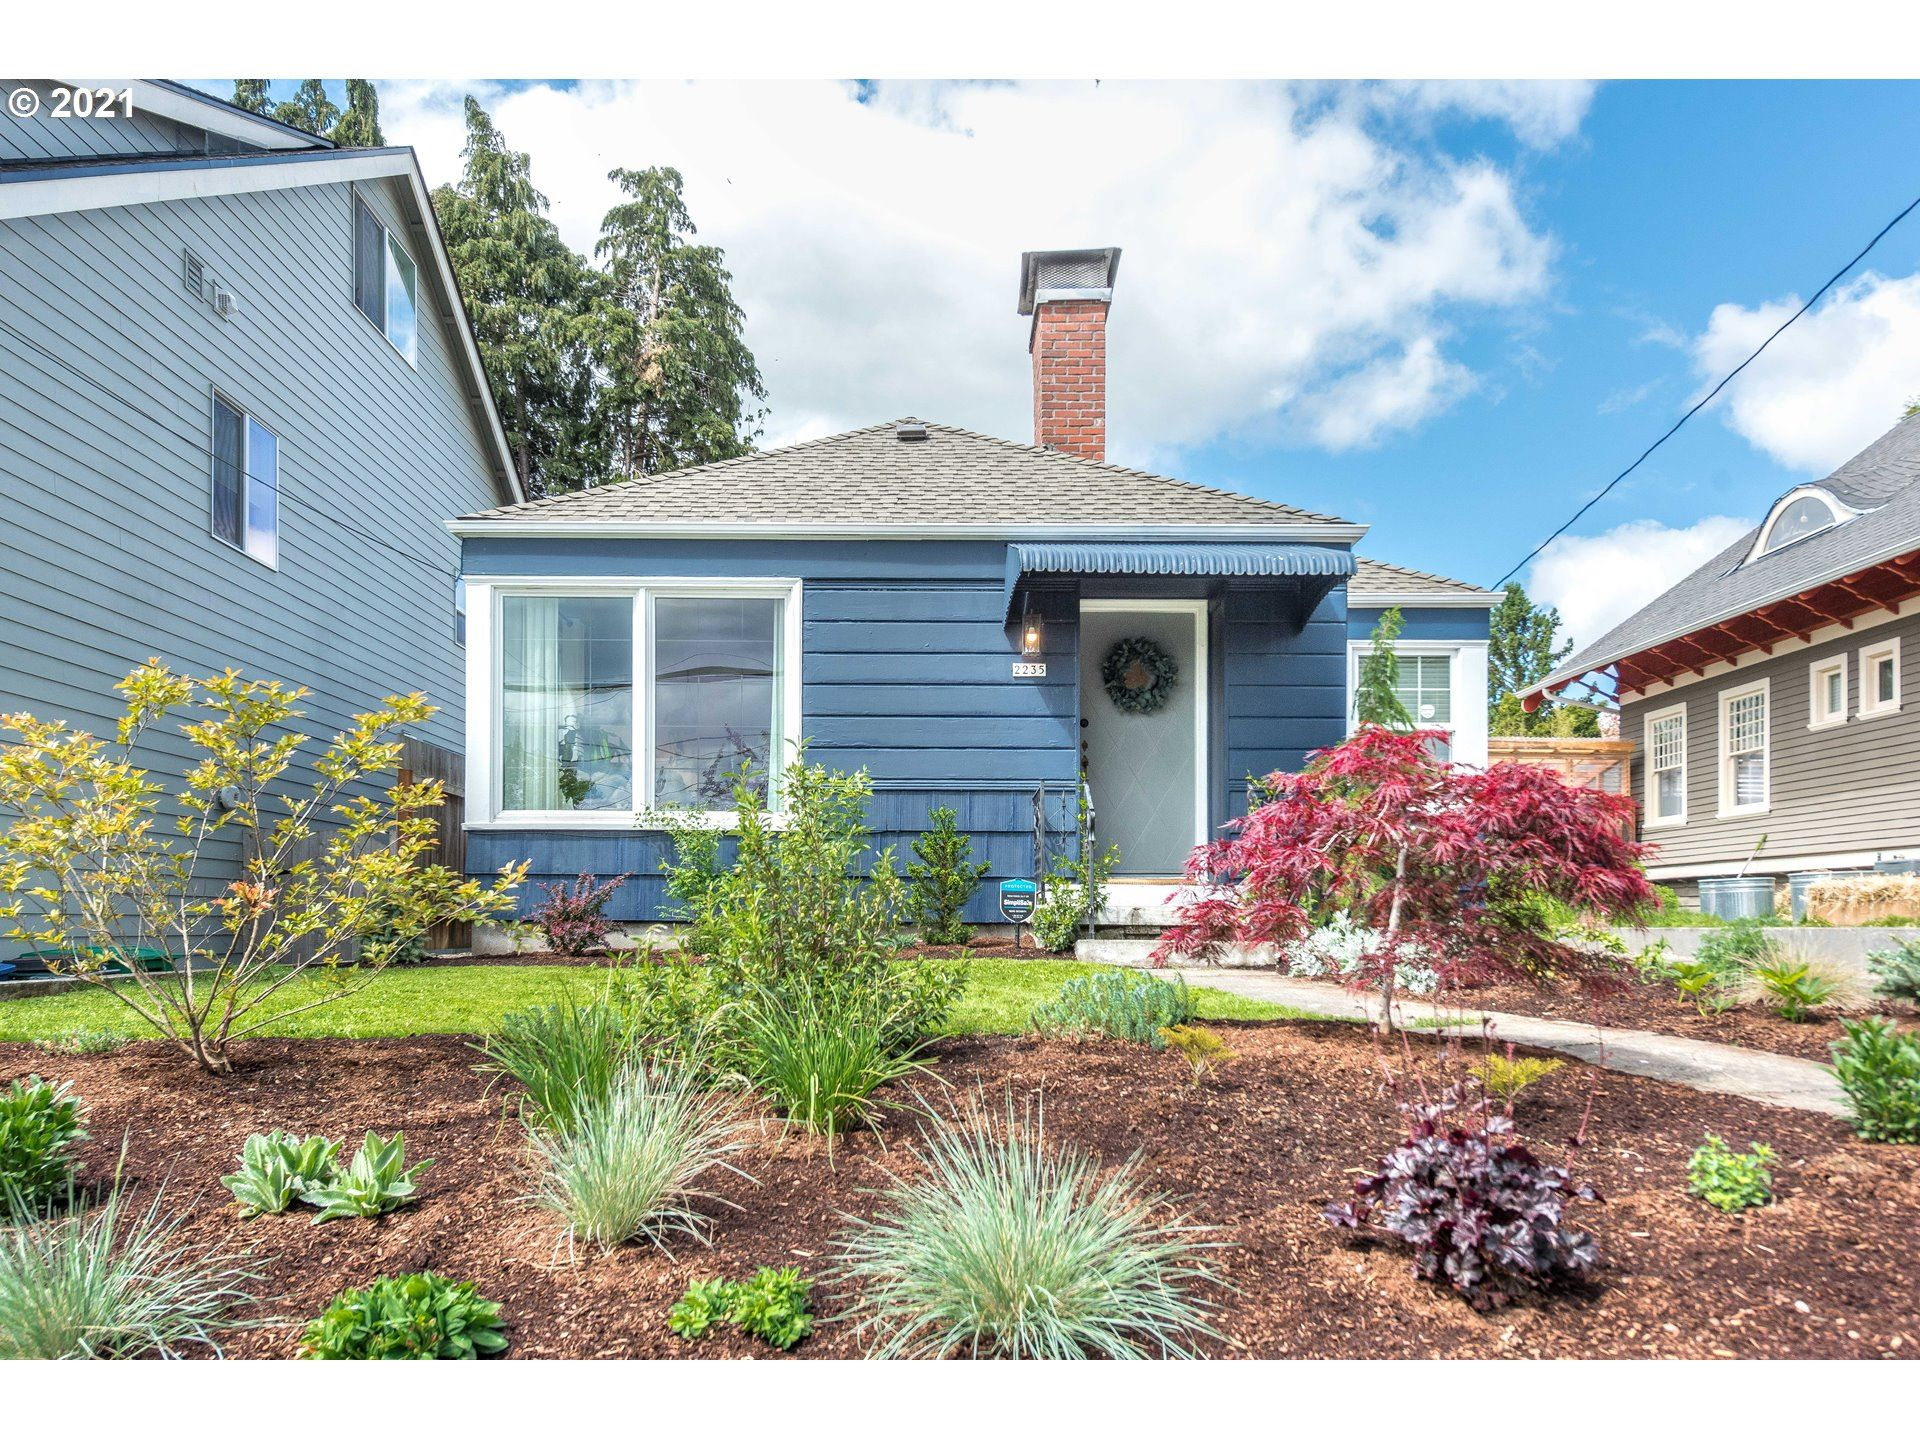 2235 SE 60TH AVE, Portland, OR 97215 - MLS#: 21220033